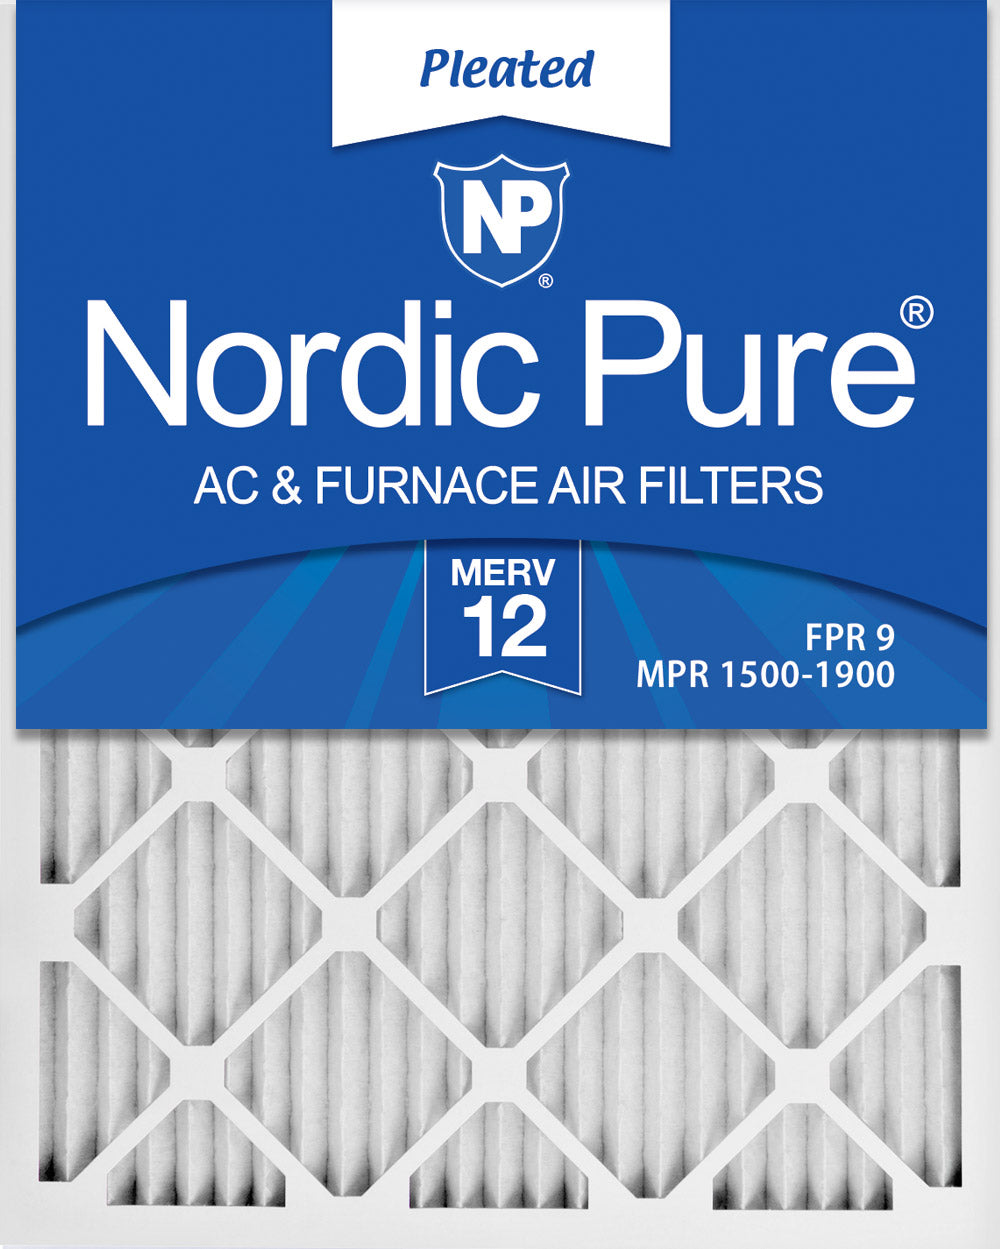 10x20x1 Pleated MERV 12 Air Filters 12 Pack